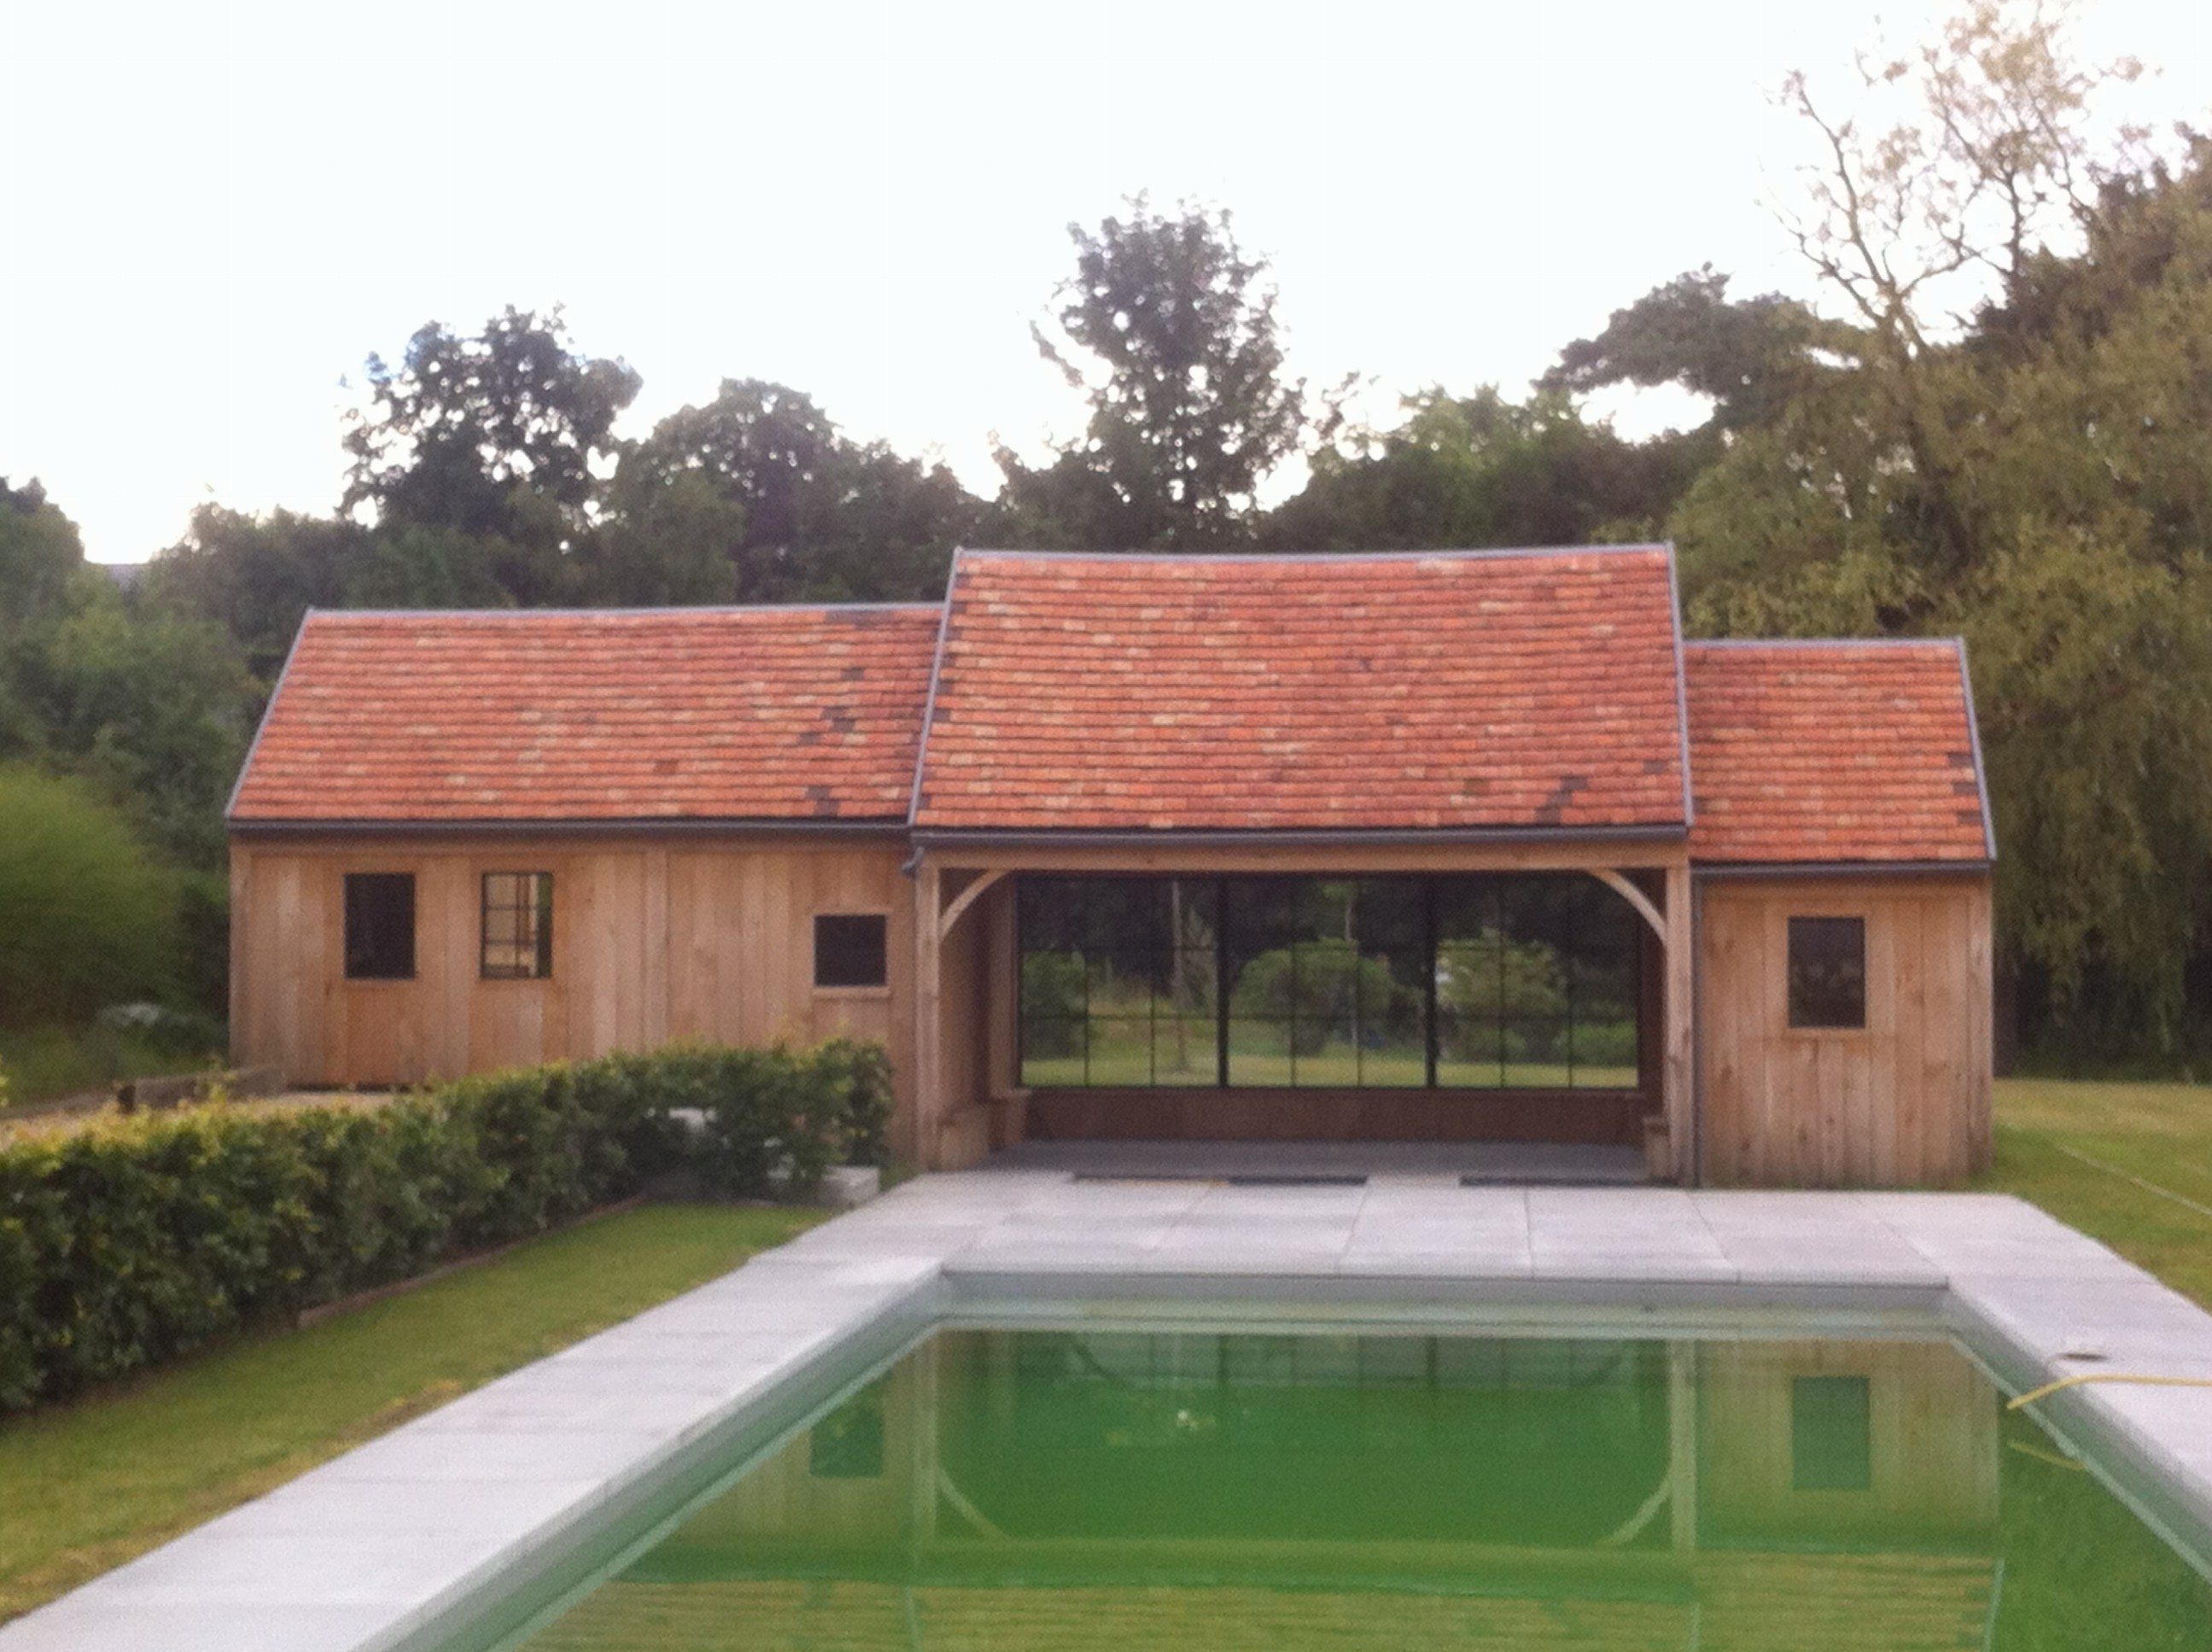 Pool house construction piscine belgique mischaperch for Accessoire piscine belgique